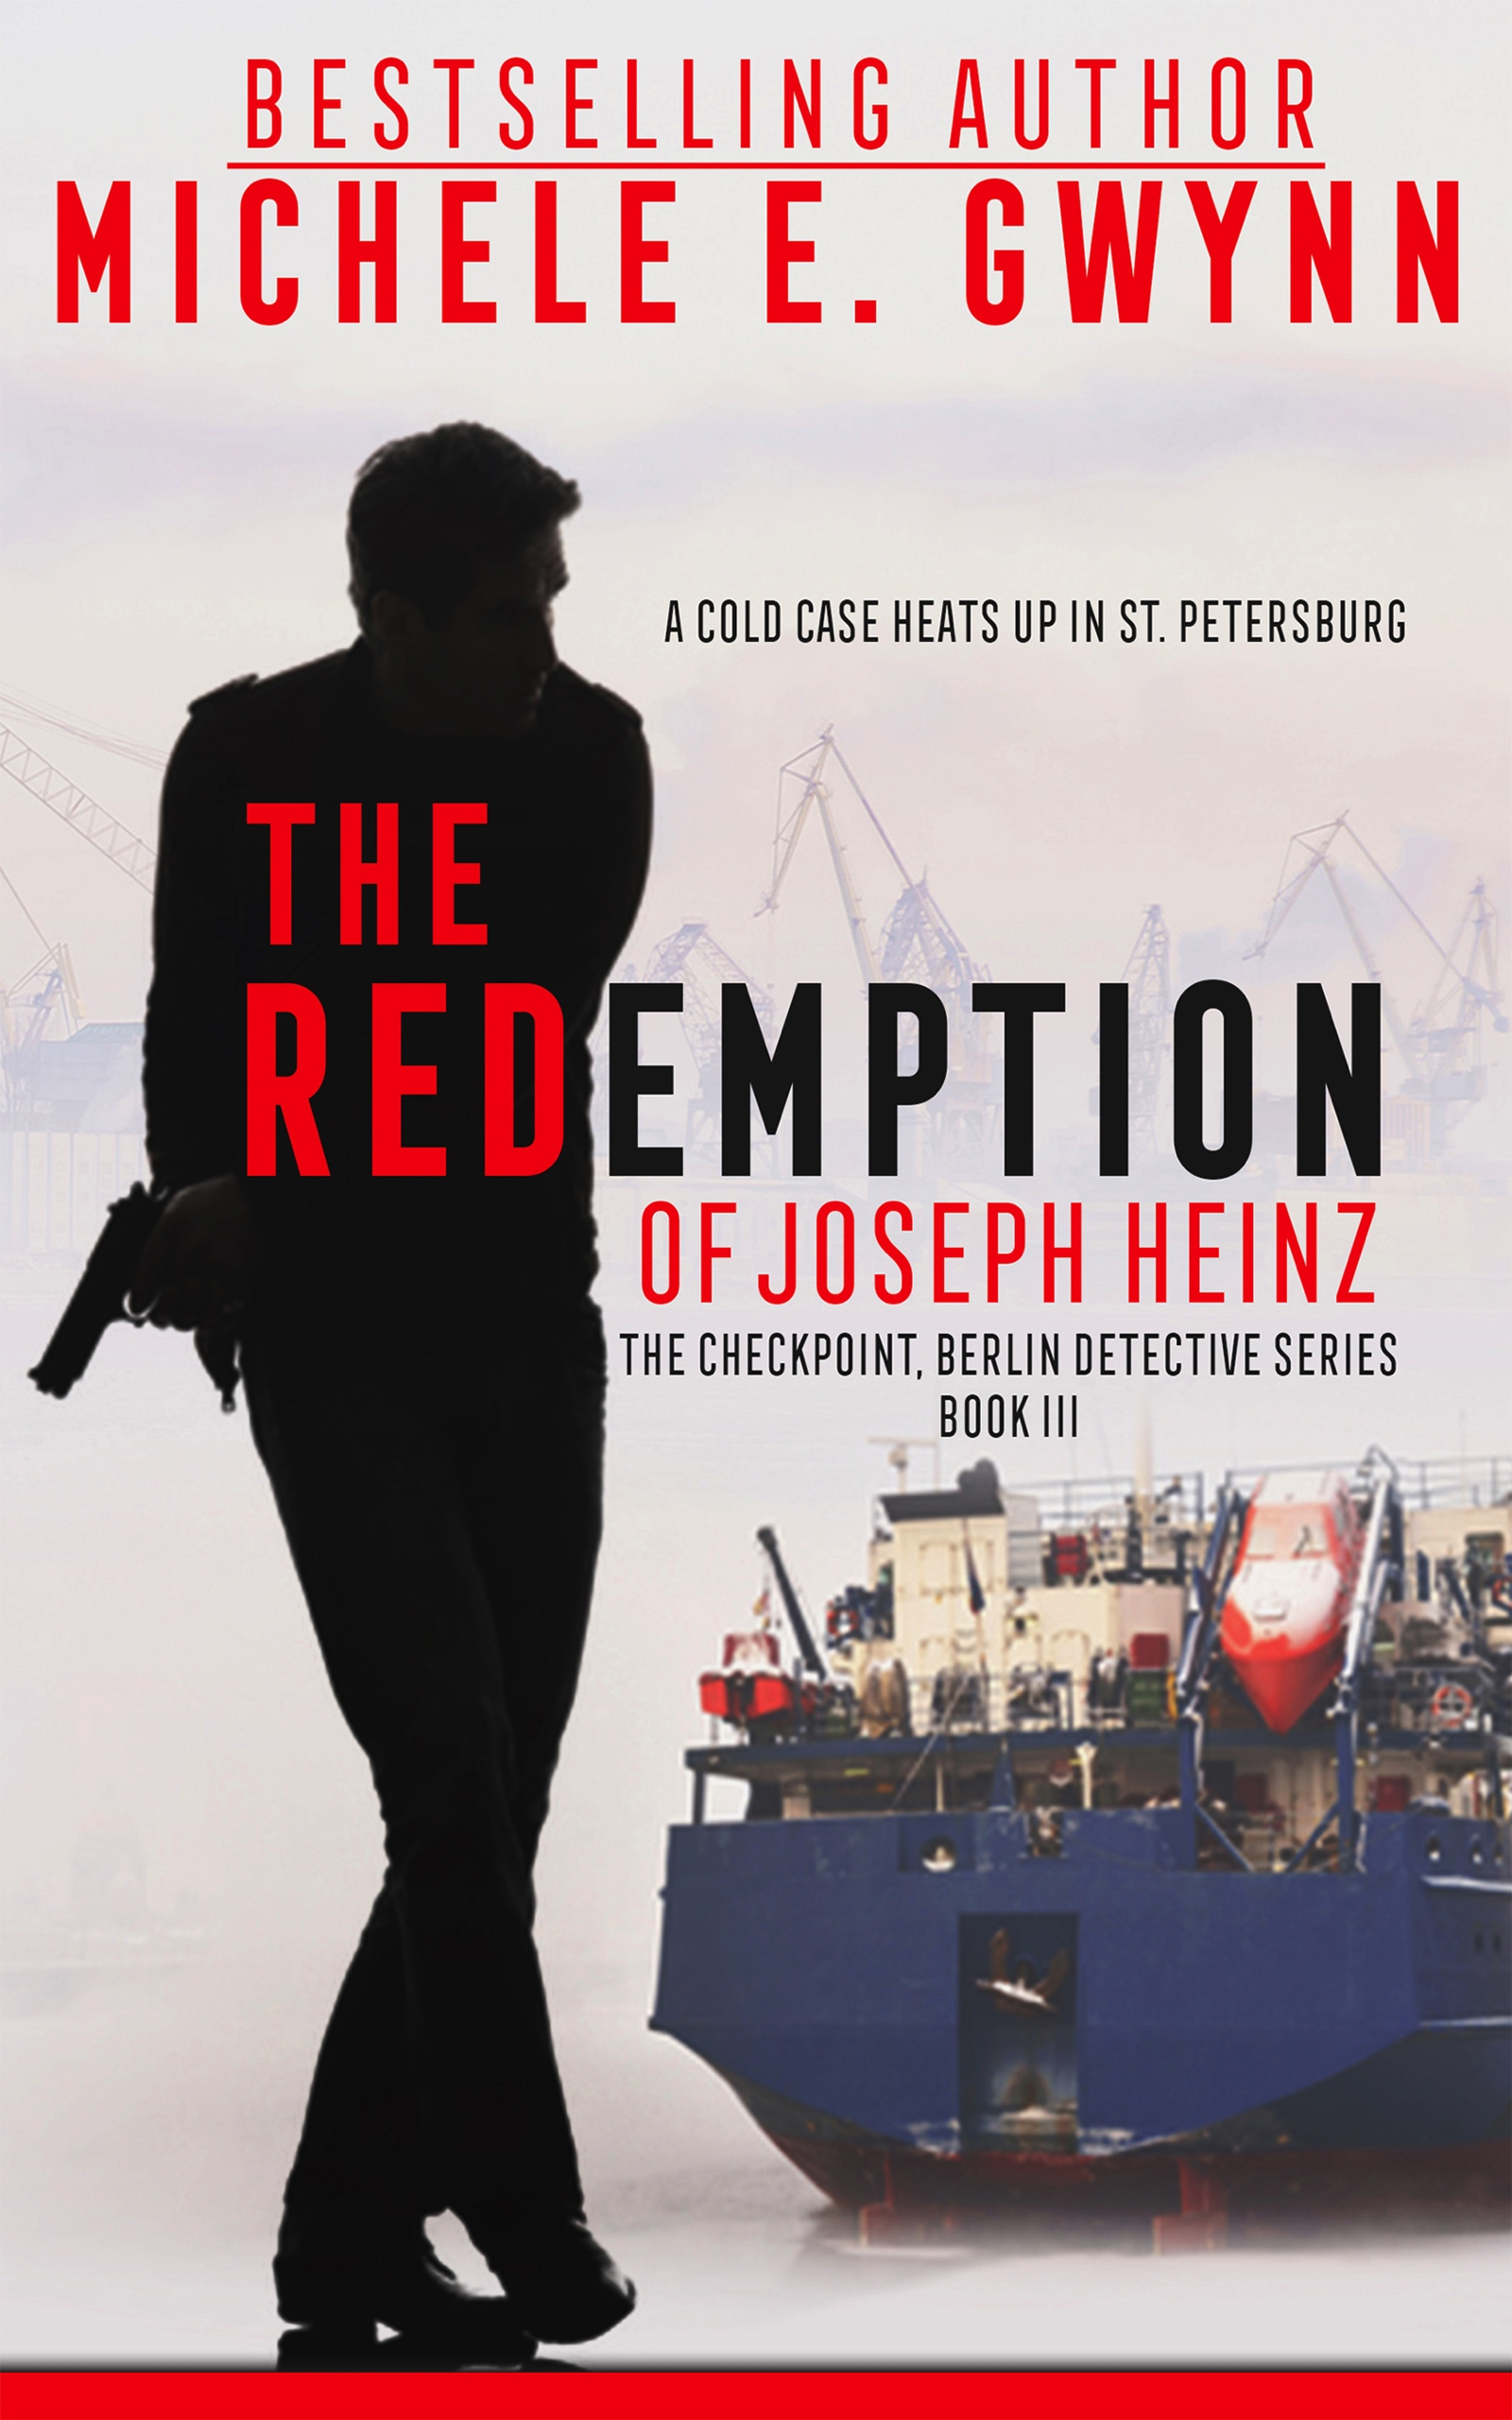 The Redemption of Joseph Heinz, The Checkpoint, Berlin Detective Series Book 3 by Michele E. Gwynn